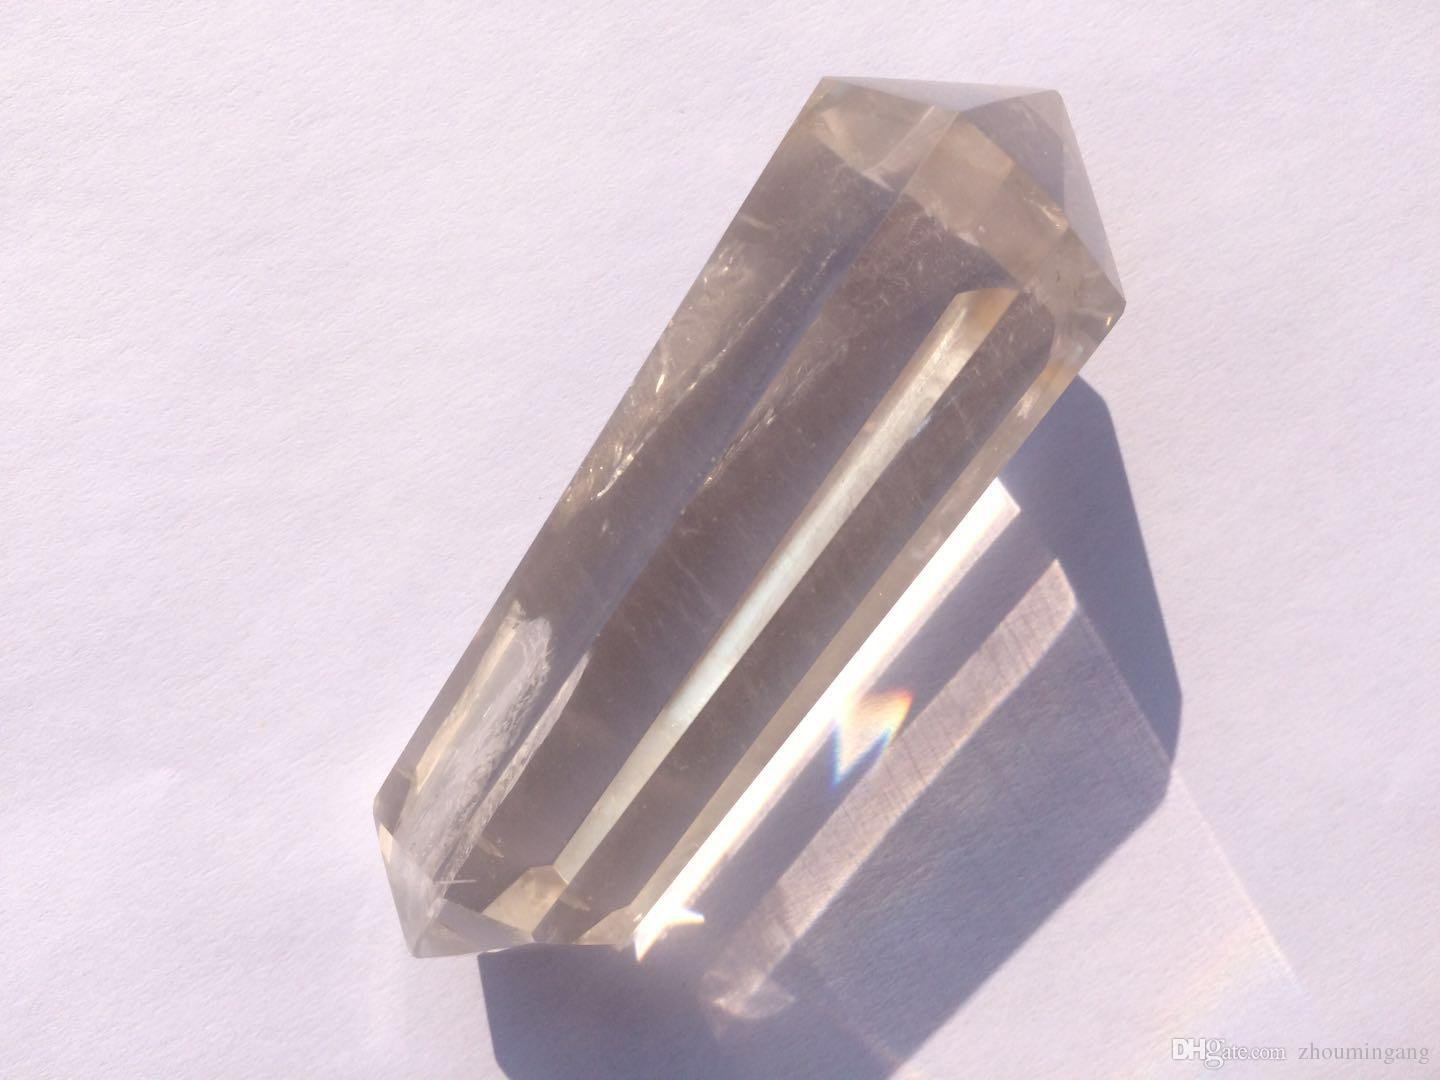 8 Sided facets Prism Style Clear Natural Quartz Crystal Double Terminated Point Wand Large healing point